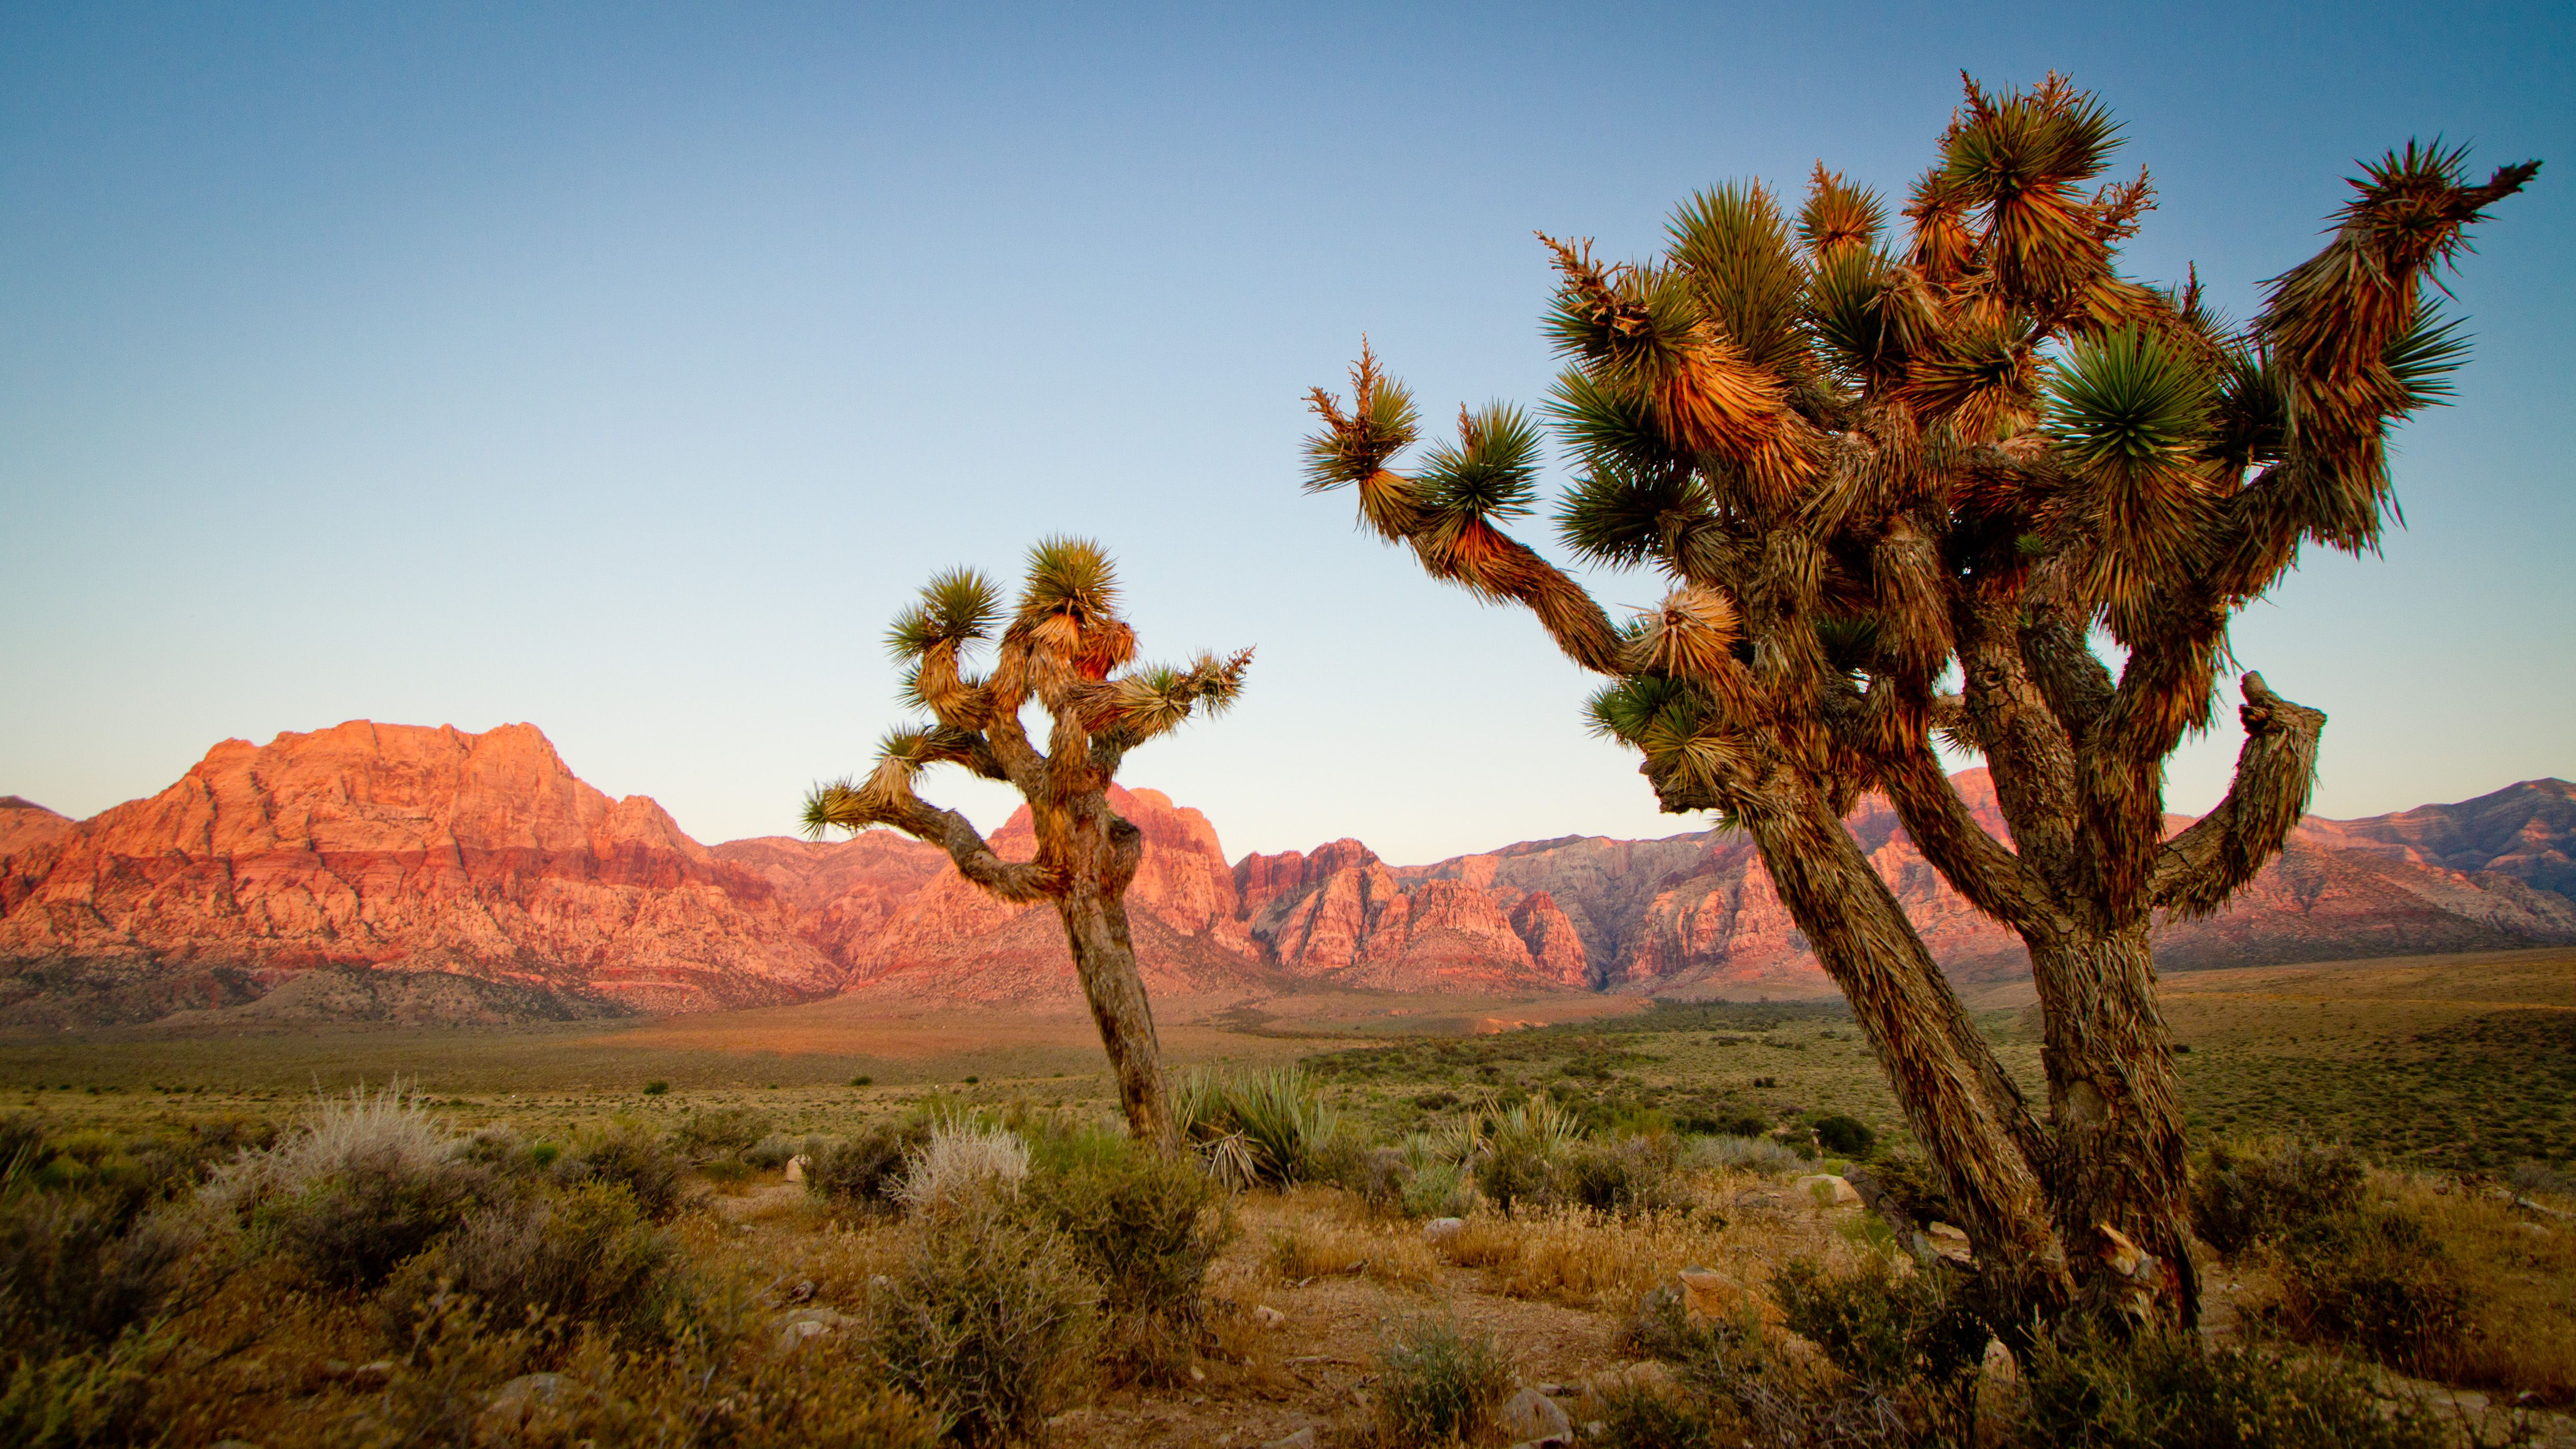 joshua tree national park muslim personals And any other person that god calls into ministry at joshua tree,  exploring joshua tree national park off  meet muslim women from fishtail free personals .